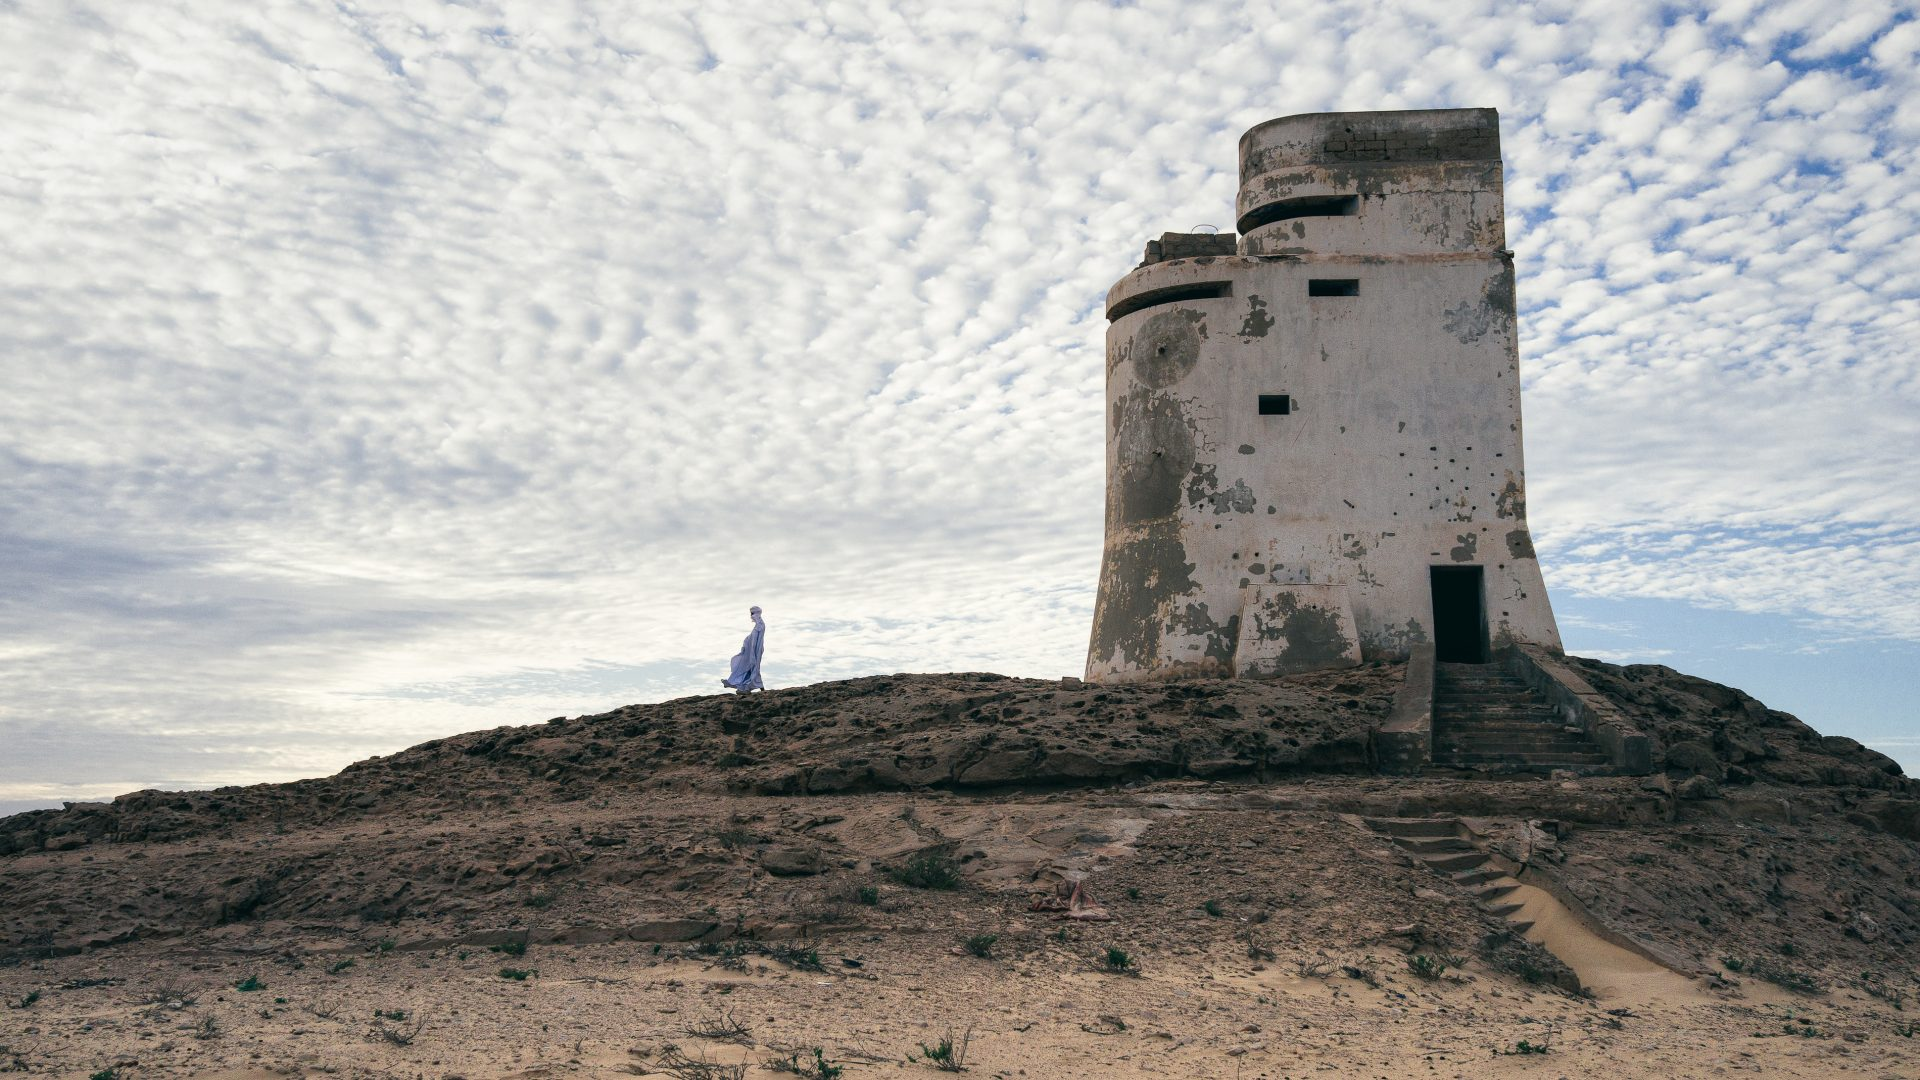 A Mauritanian man emerges from one of the abandoned war turrets that were used to defend the coastline from attack.